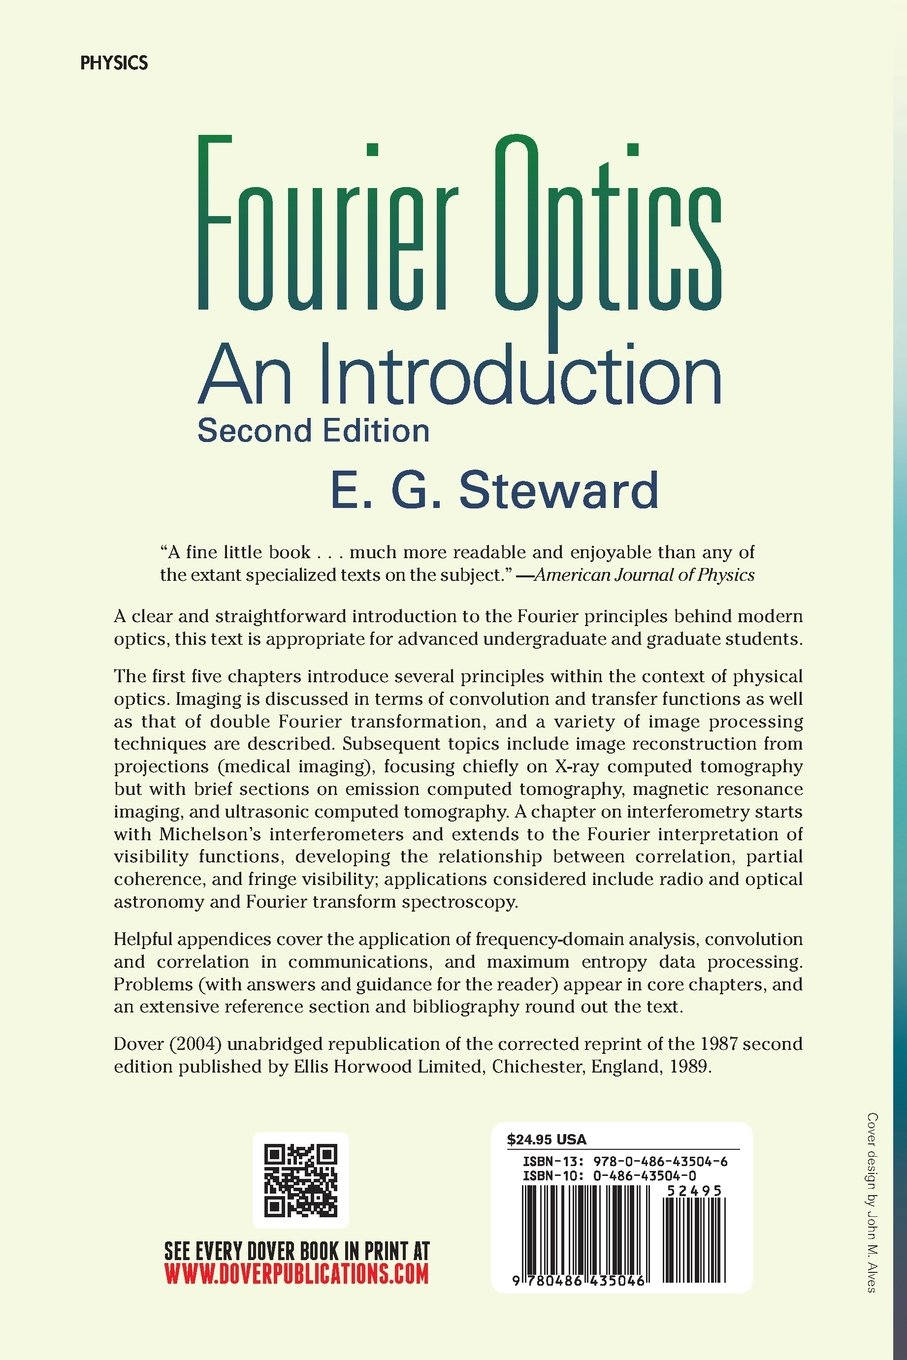 Fourier optics an introduction 2nd edition e g steward fourier optics an introduction 2nd edition e g steward 9780486435046 amazon books fandeluxe Image collections